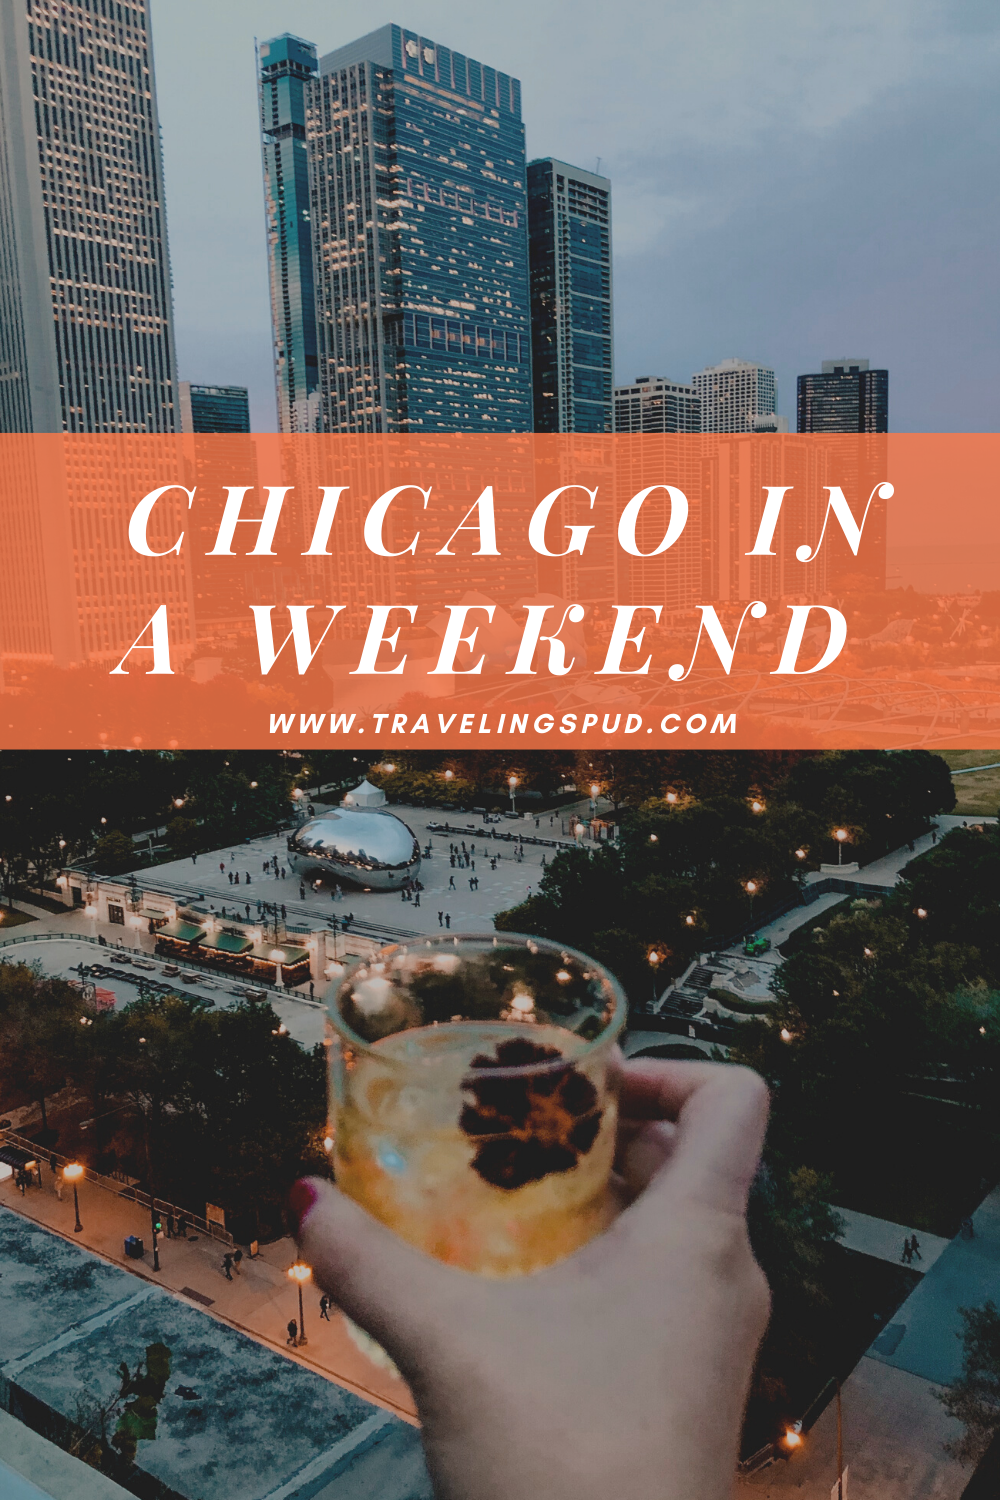 Chicago in a Weekend